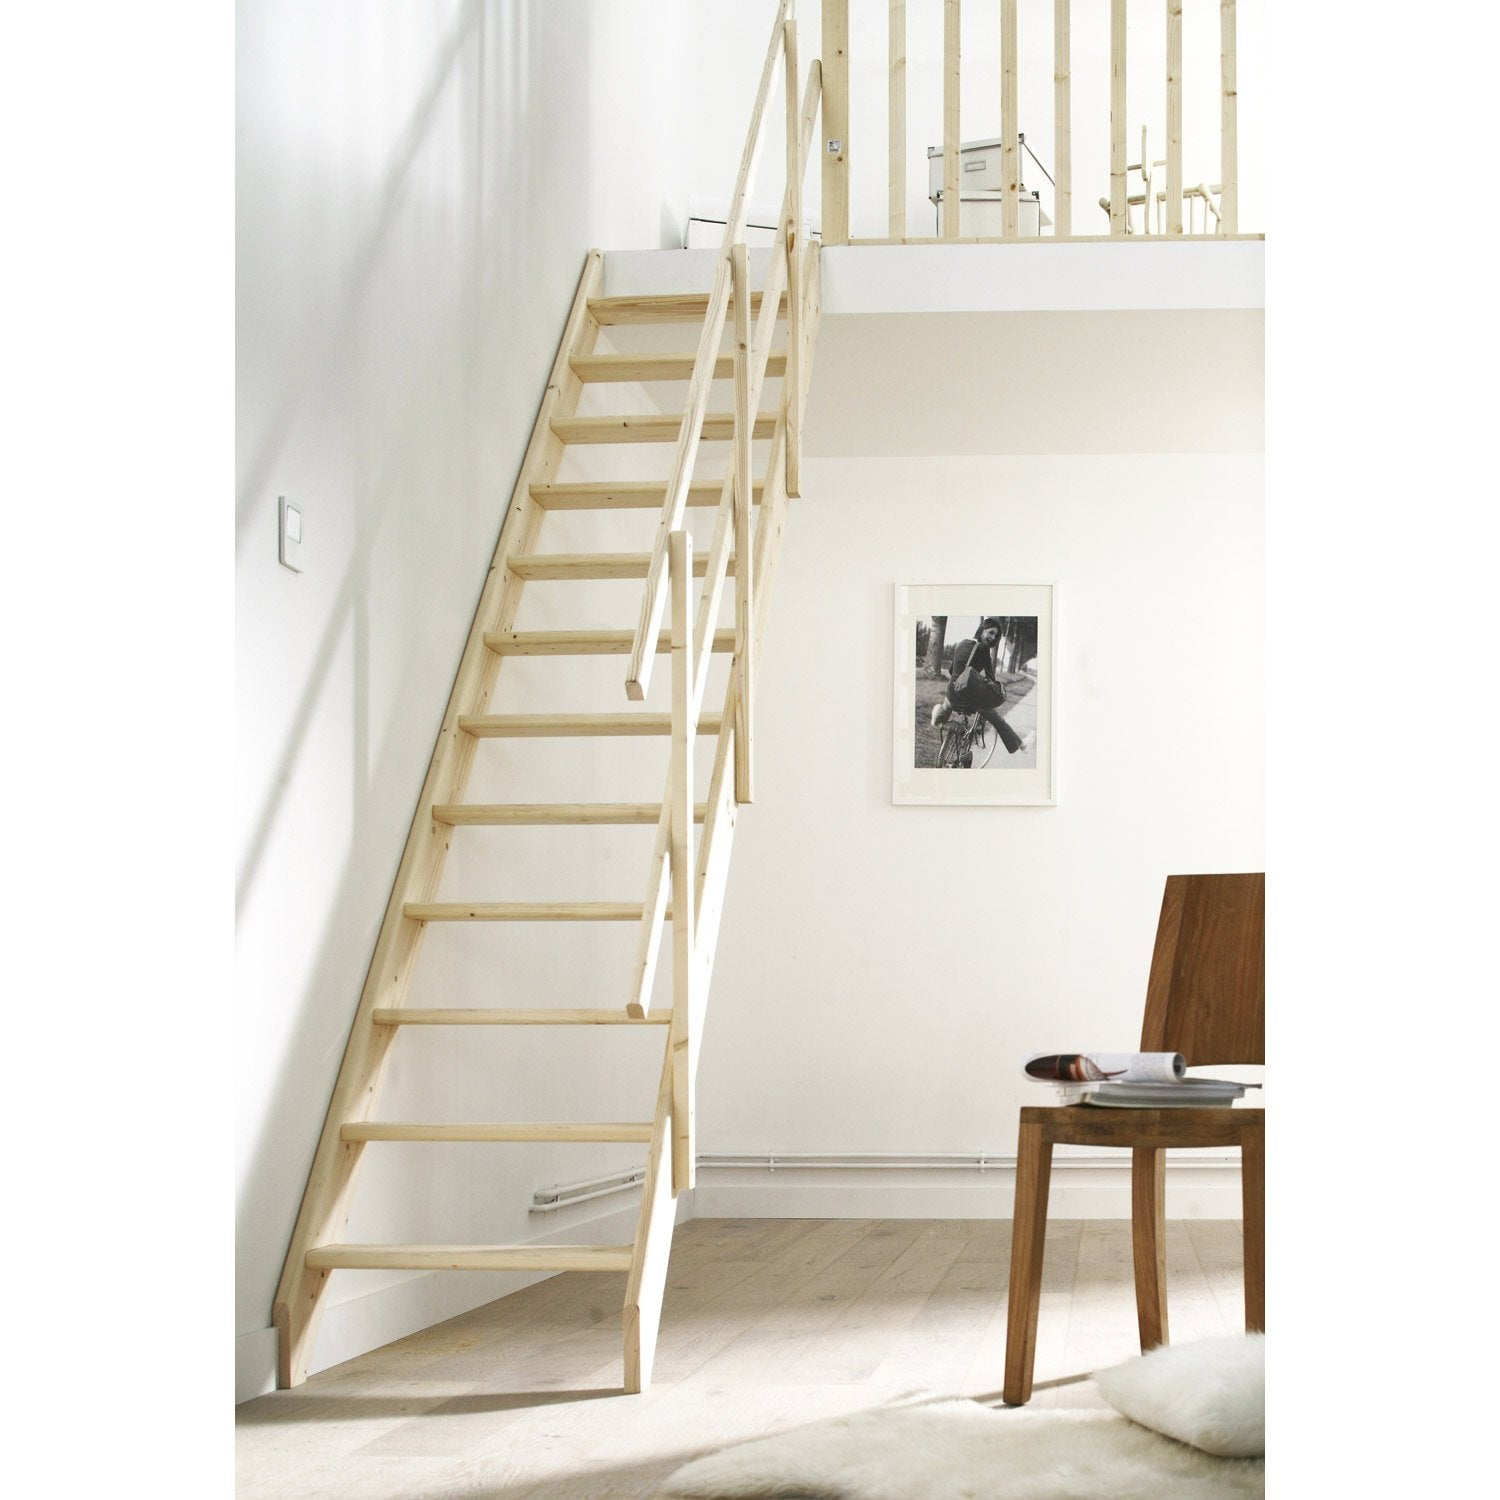 echelle escalier echelle escalier with echelle escalier escalier city qt bas mtal std marches. Black Bedroom Furniture Sets. Home Design Ideas